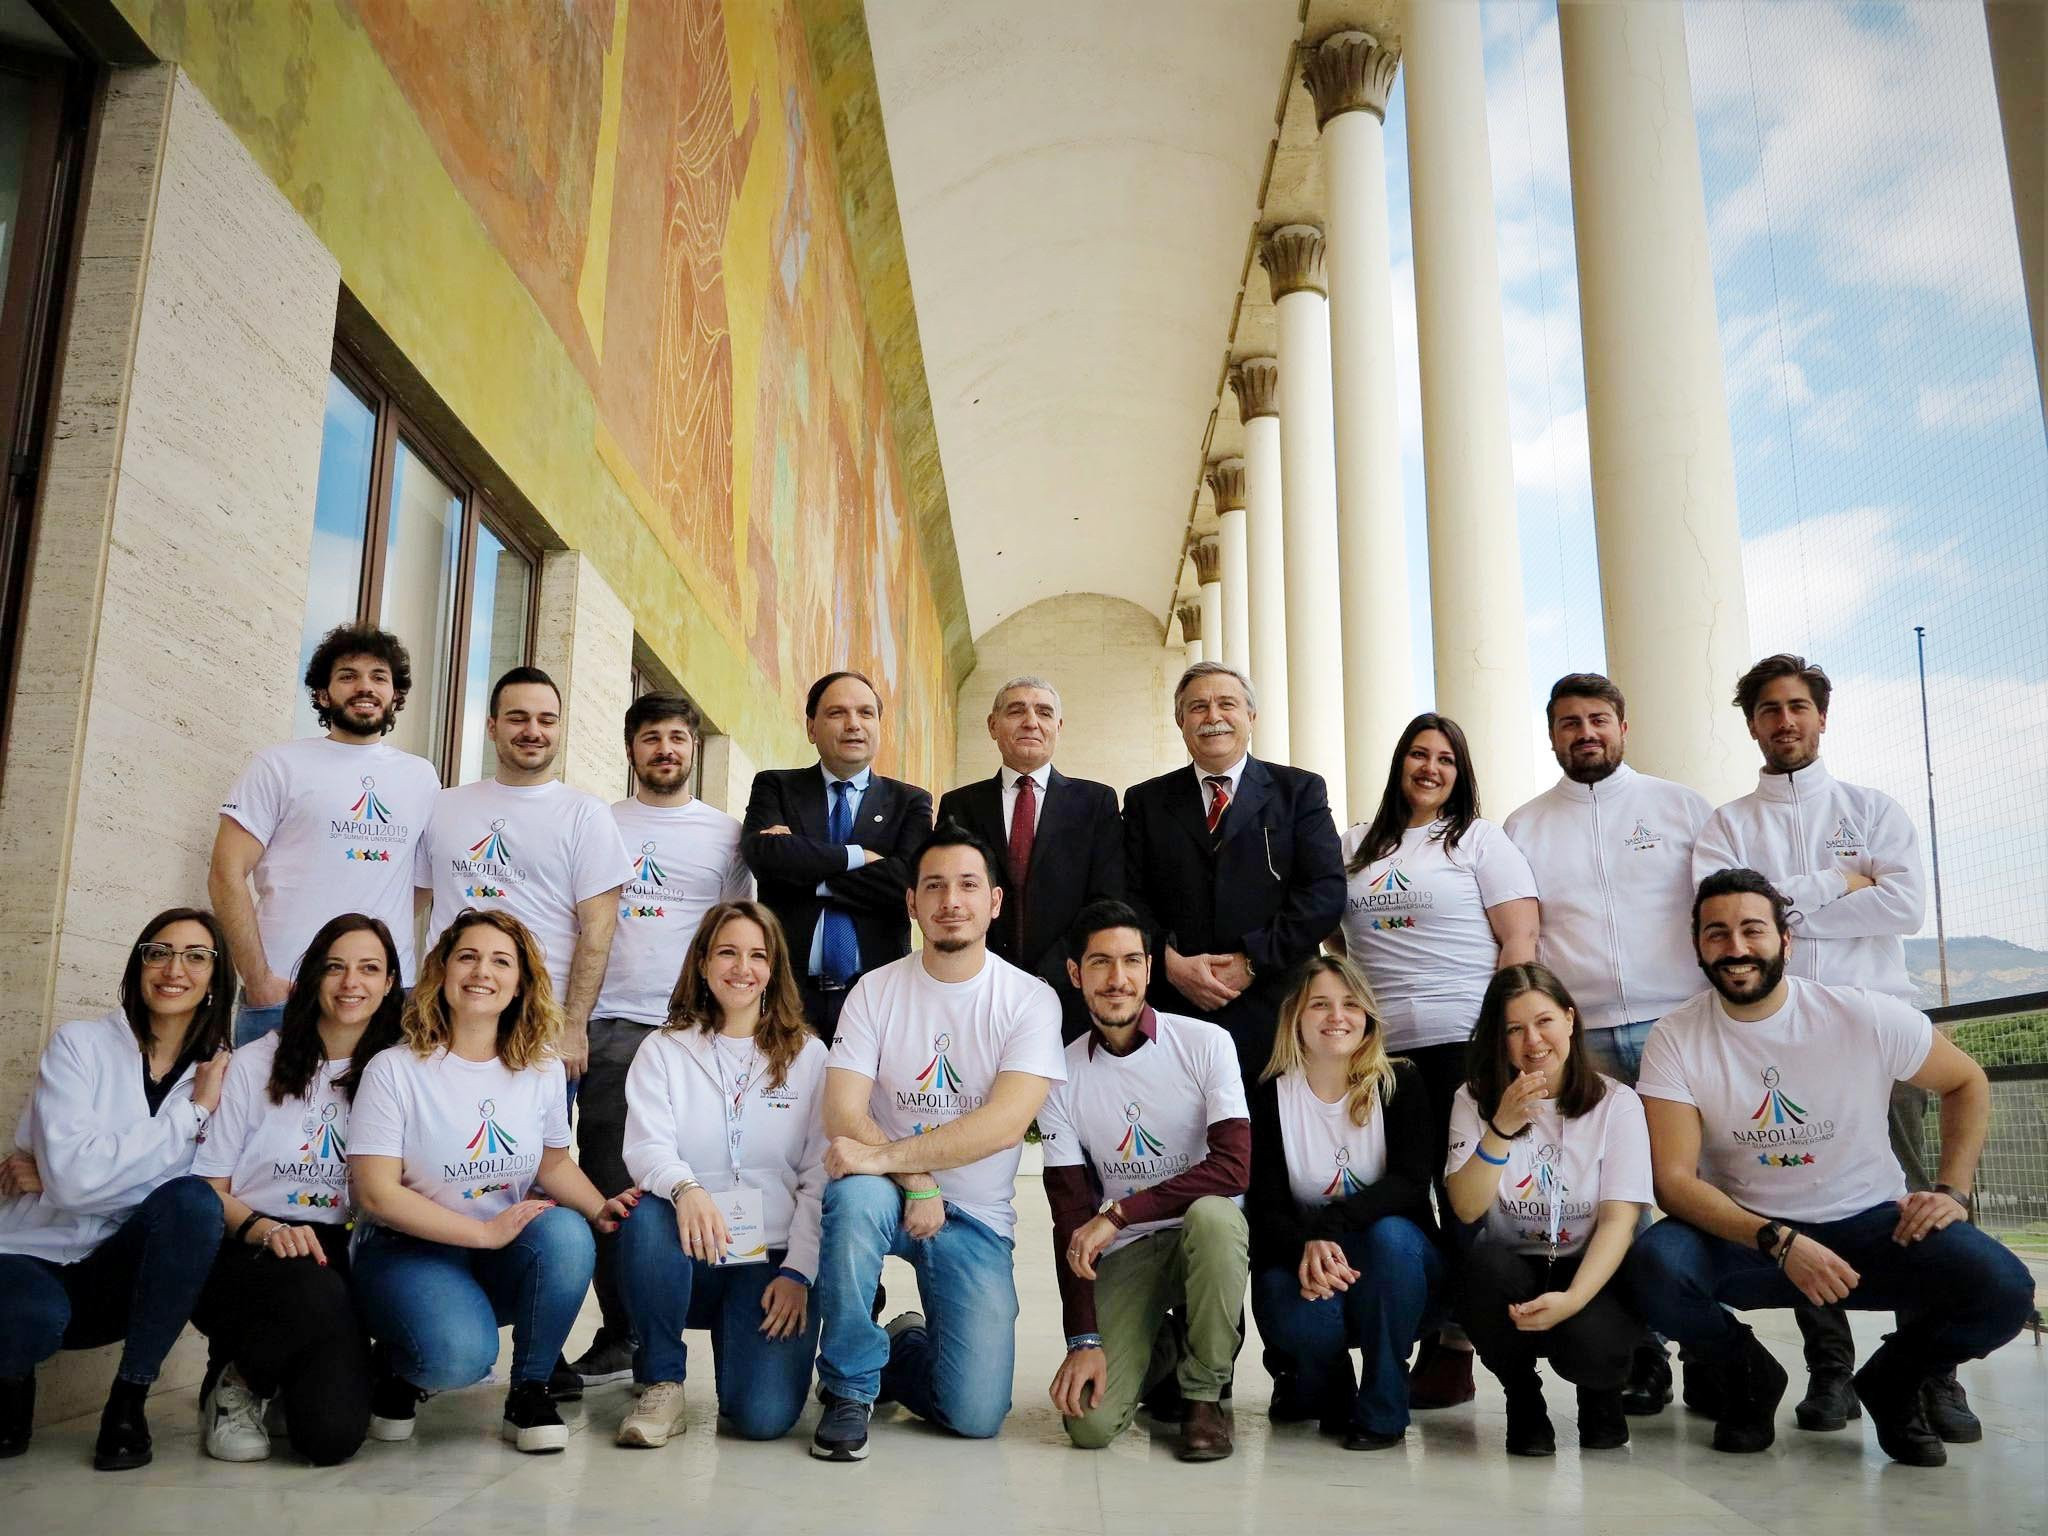 The campaign to recruit volunteers for the Naples 2019 Summer Universiade was launched in March ©Naples 2019